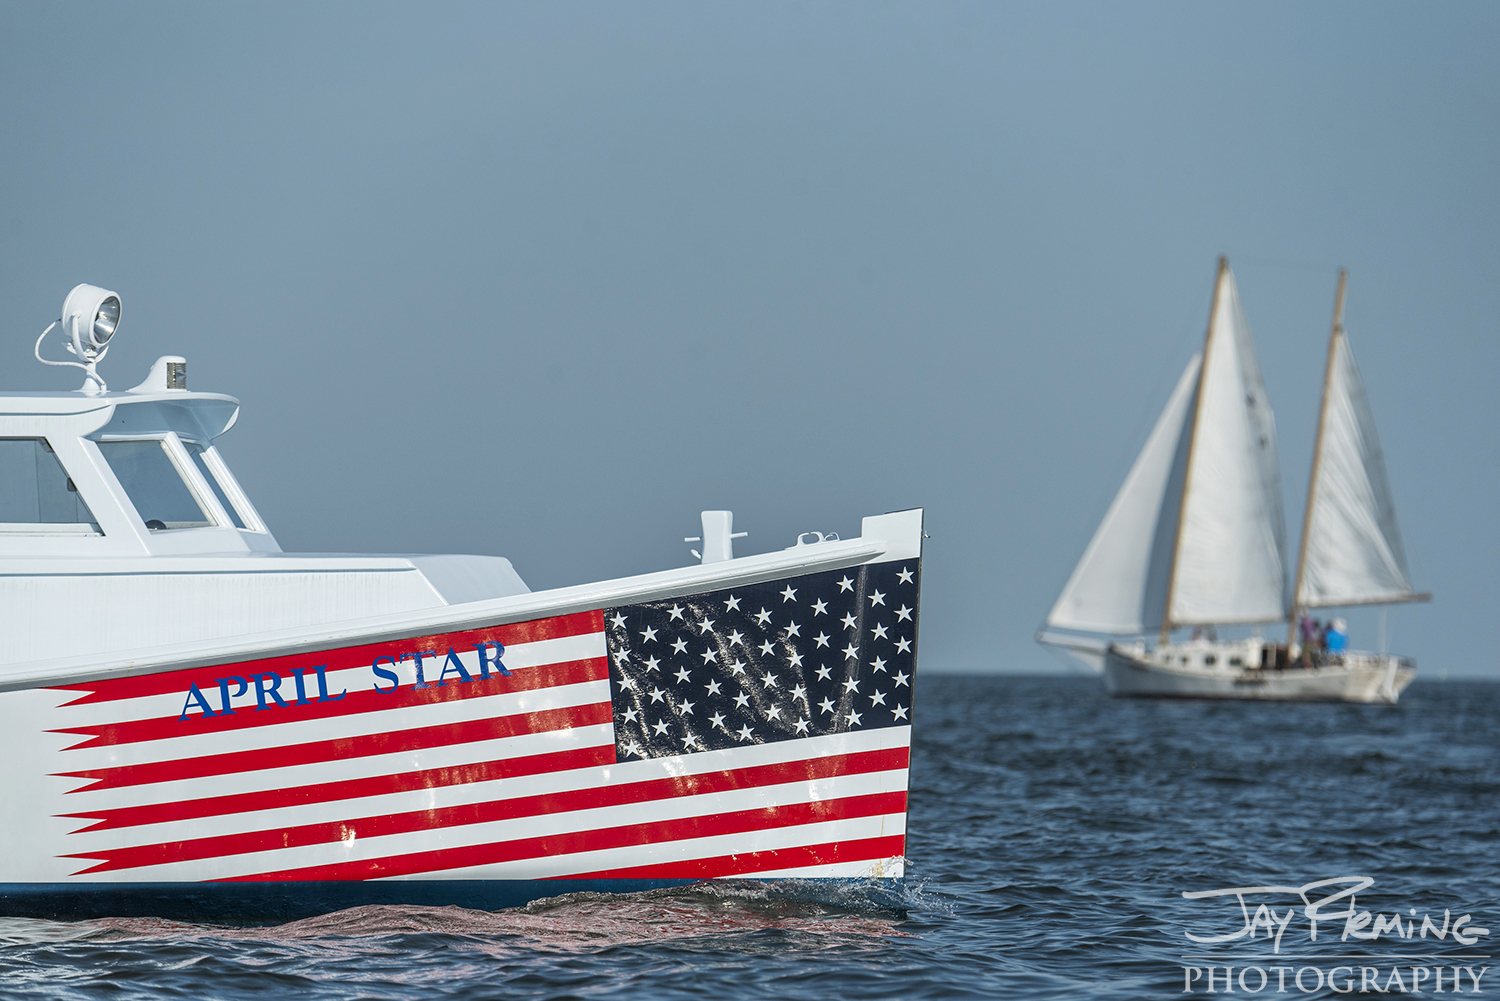 The classic roundstern workboat  April Star  out of Scott's Cove Marina on Deal Island watches the race with passengers.